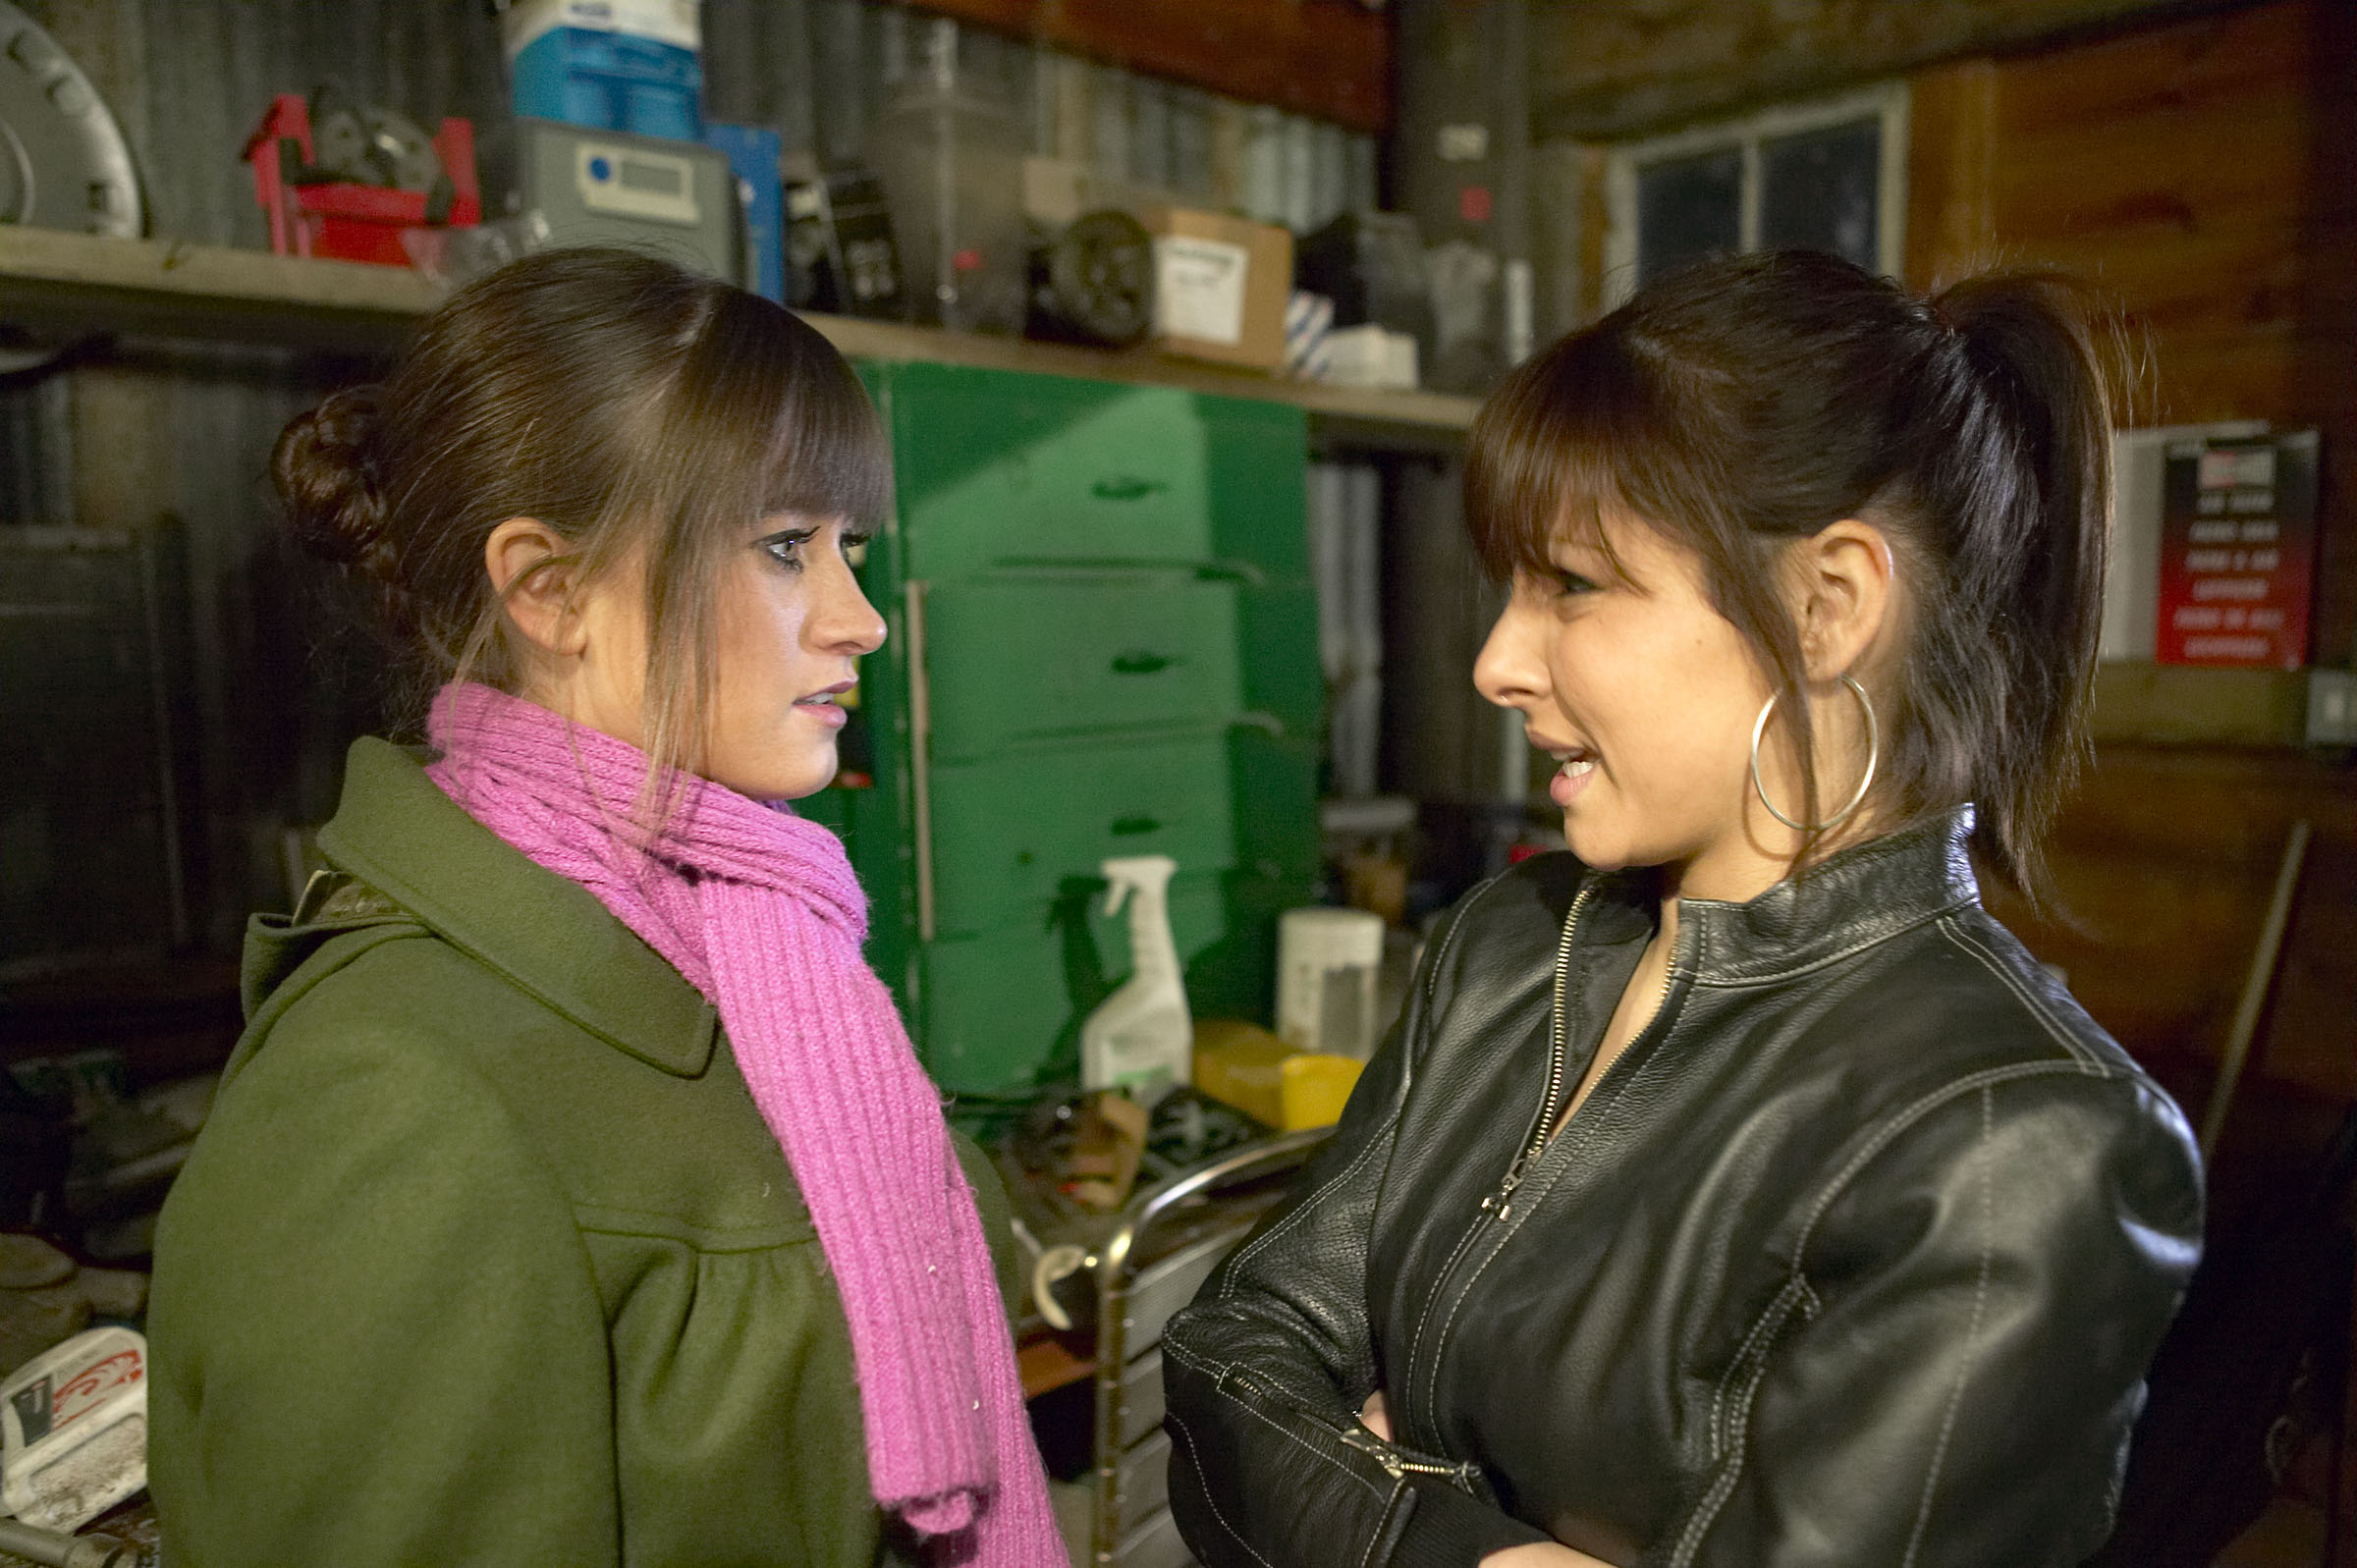 Will Debbie give up Sarah?